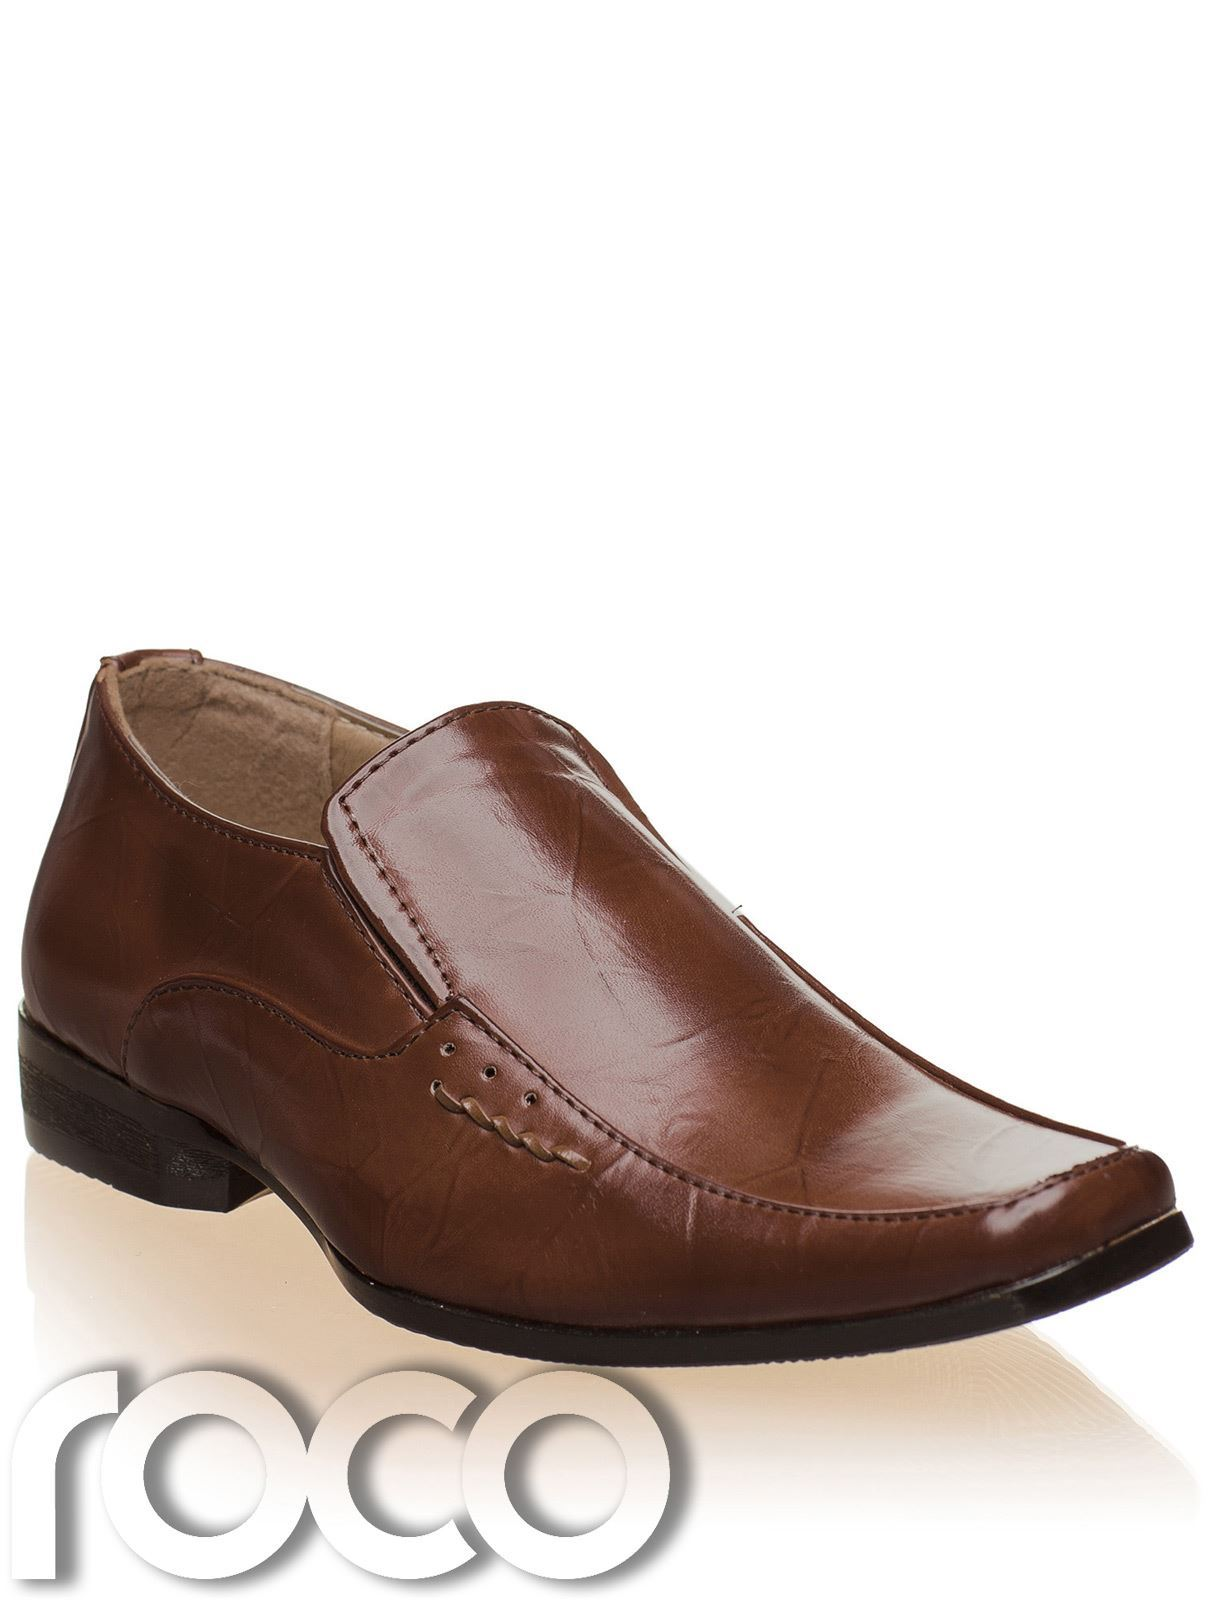 There's something sophisticated about oxford shoes, even more so when women wear it. These may be considered formal wear for men but give it a little twist and you will see oxfords in a totally different light.